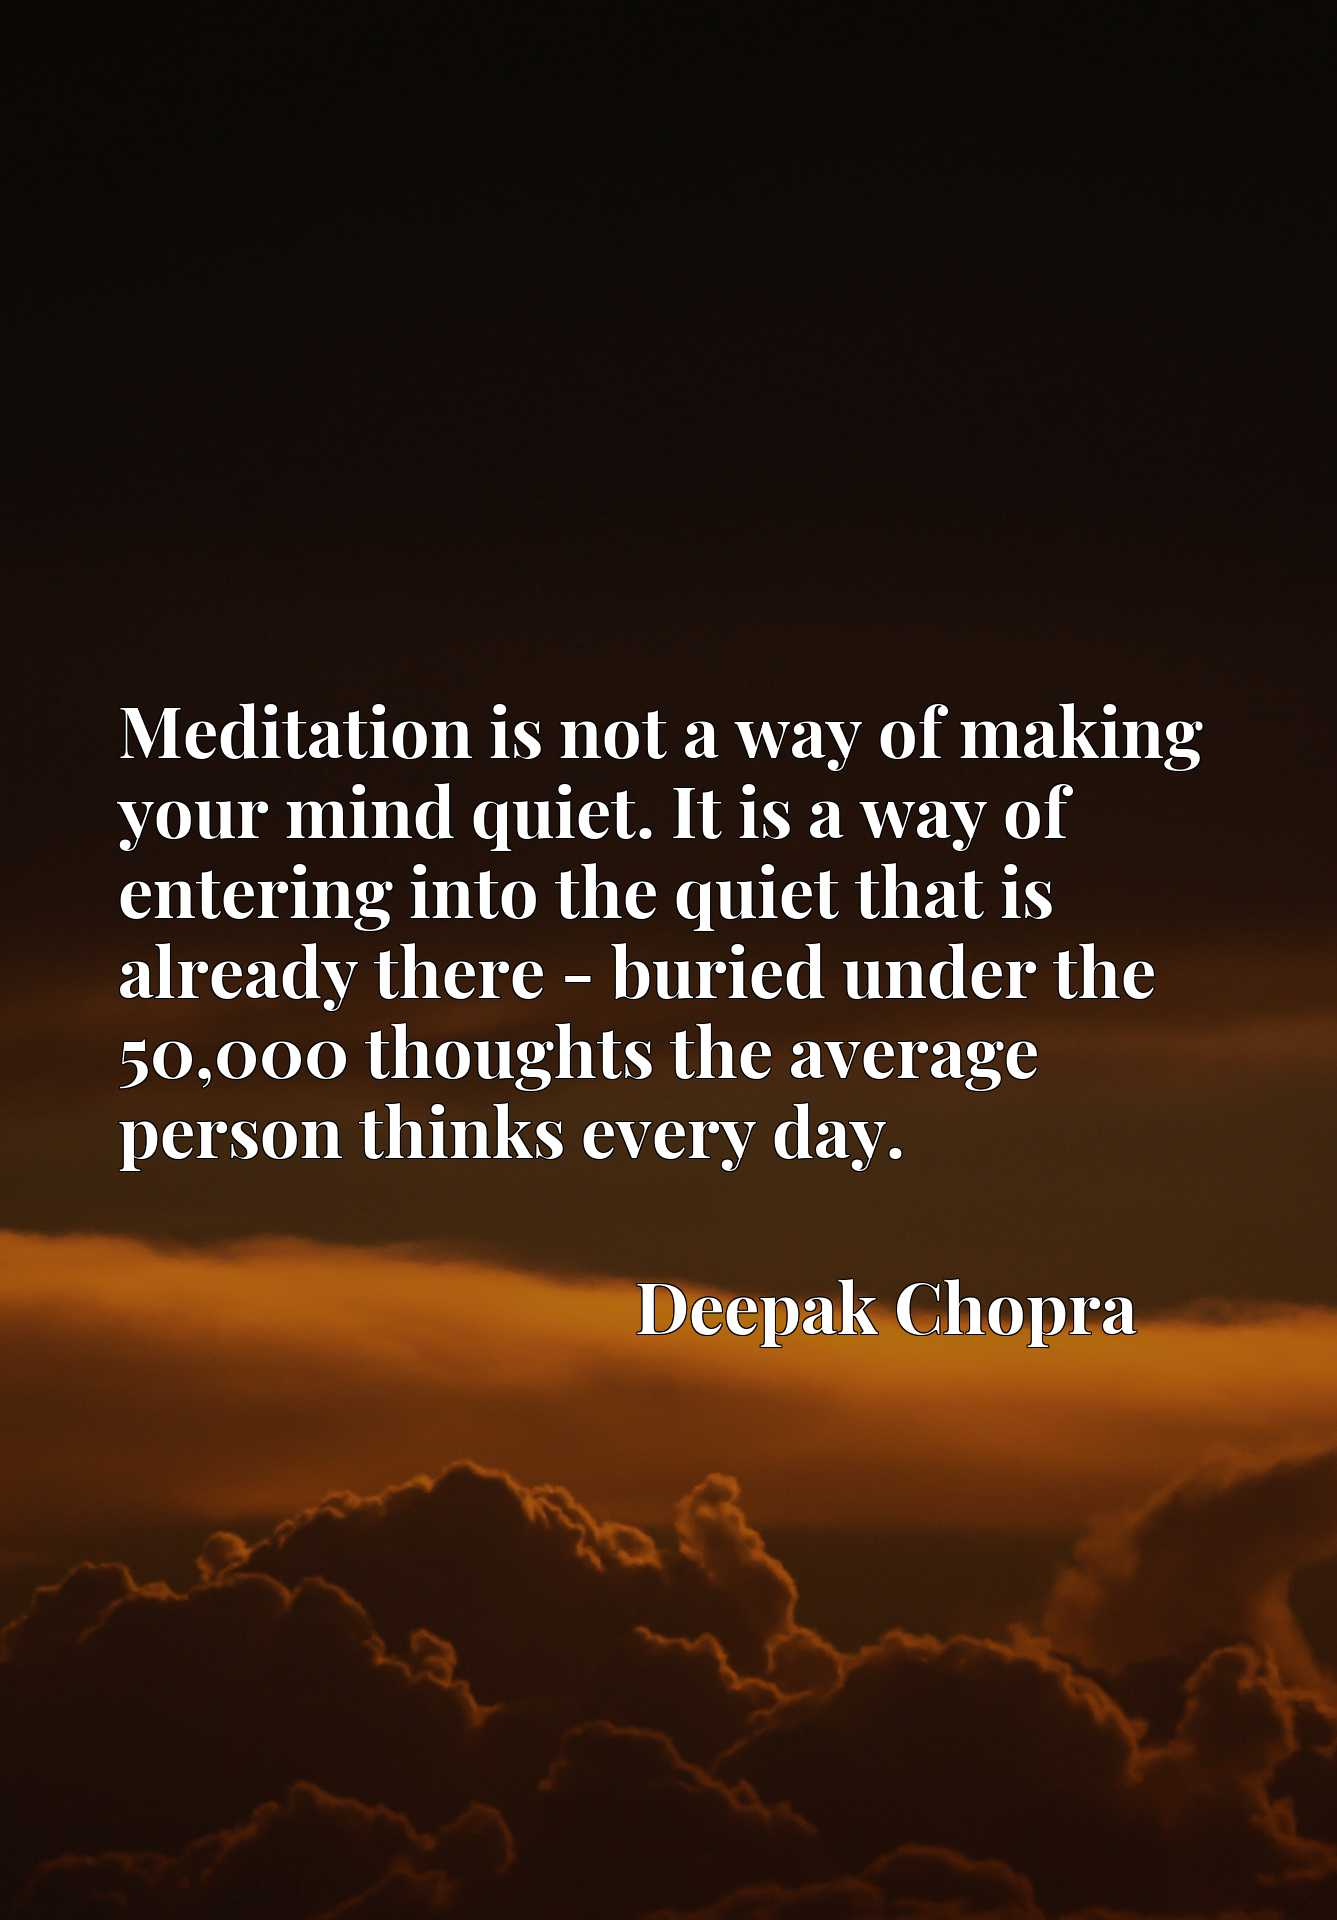 Quote Picture :Meditation is not a way of making your mind quiet. It is a way of entering into the quiet that is already there - buried under the 50,000 thoughts the average person thinks every day.